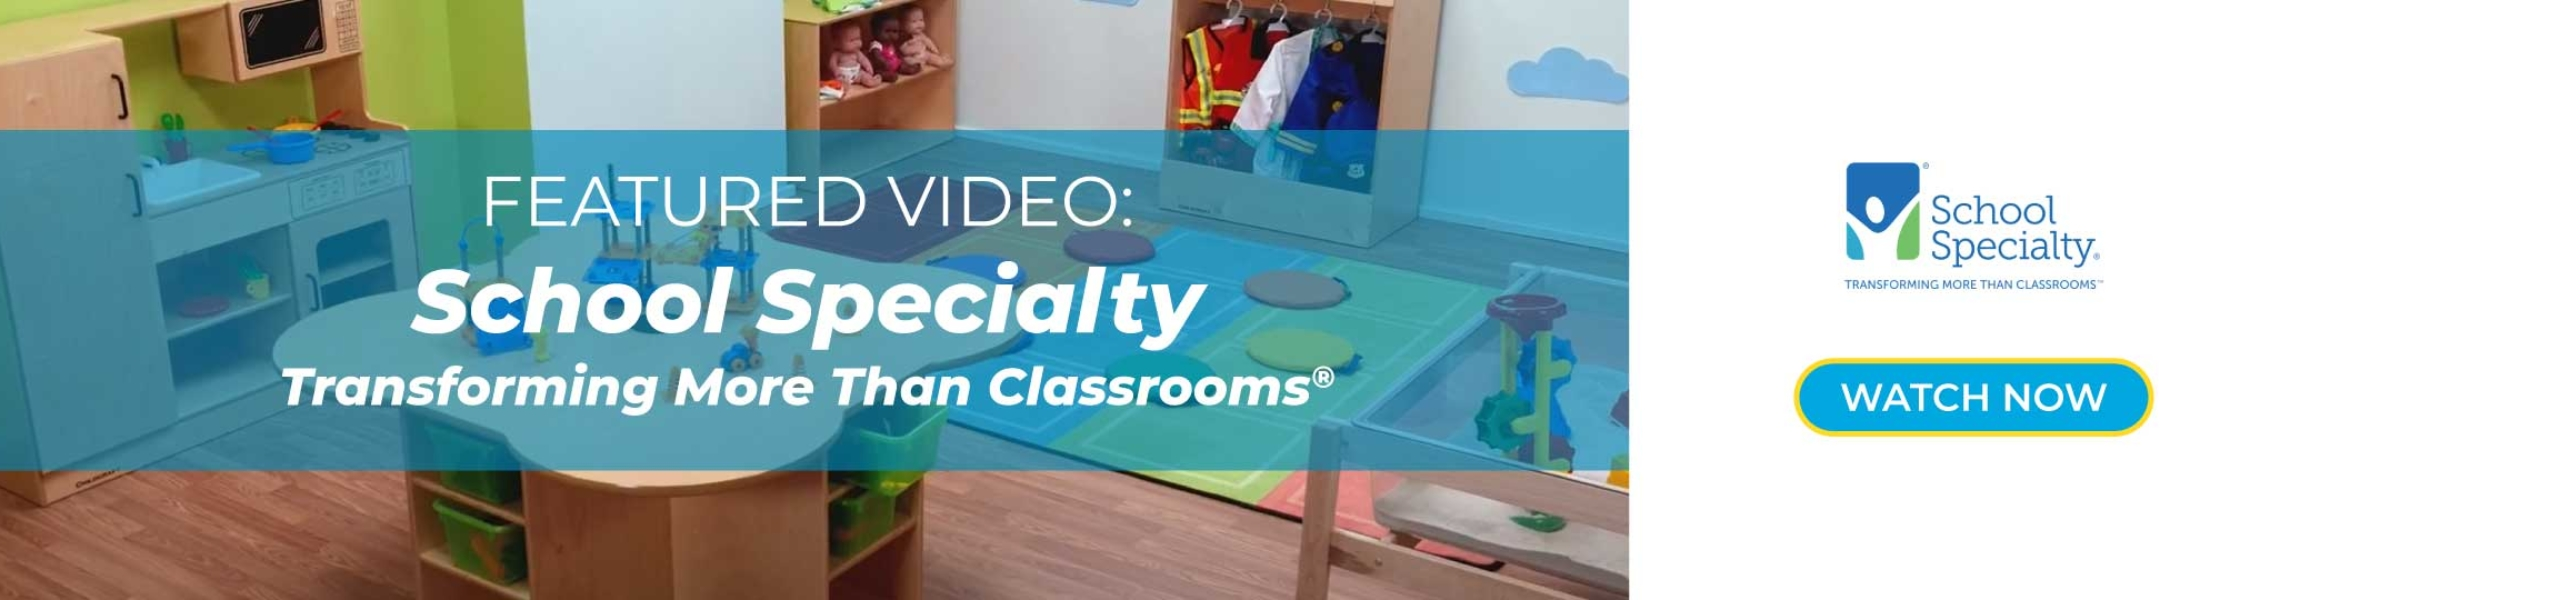 Watch the Featured Video from School Specialty